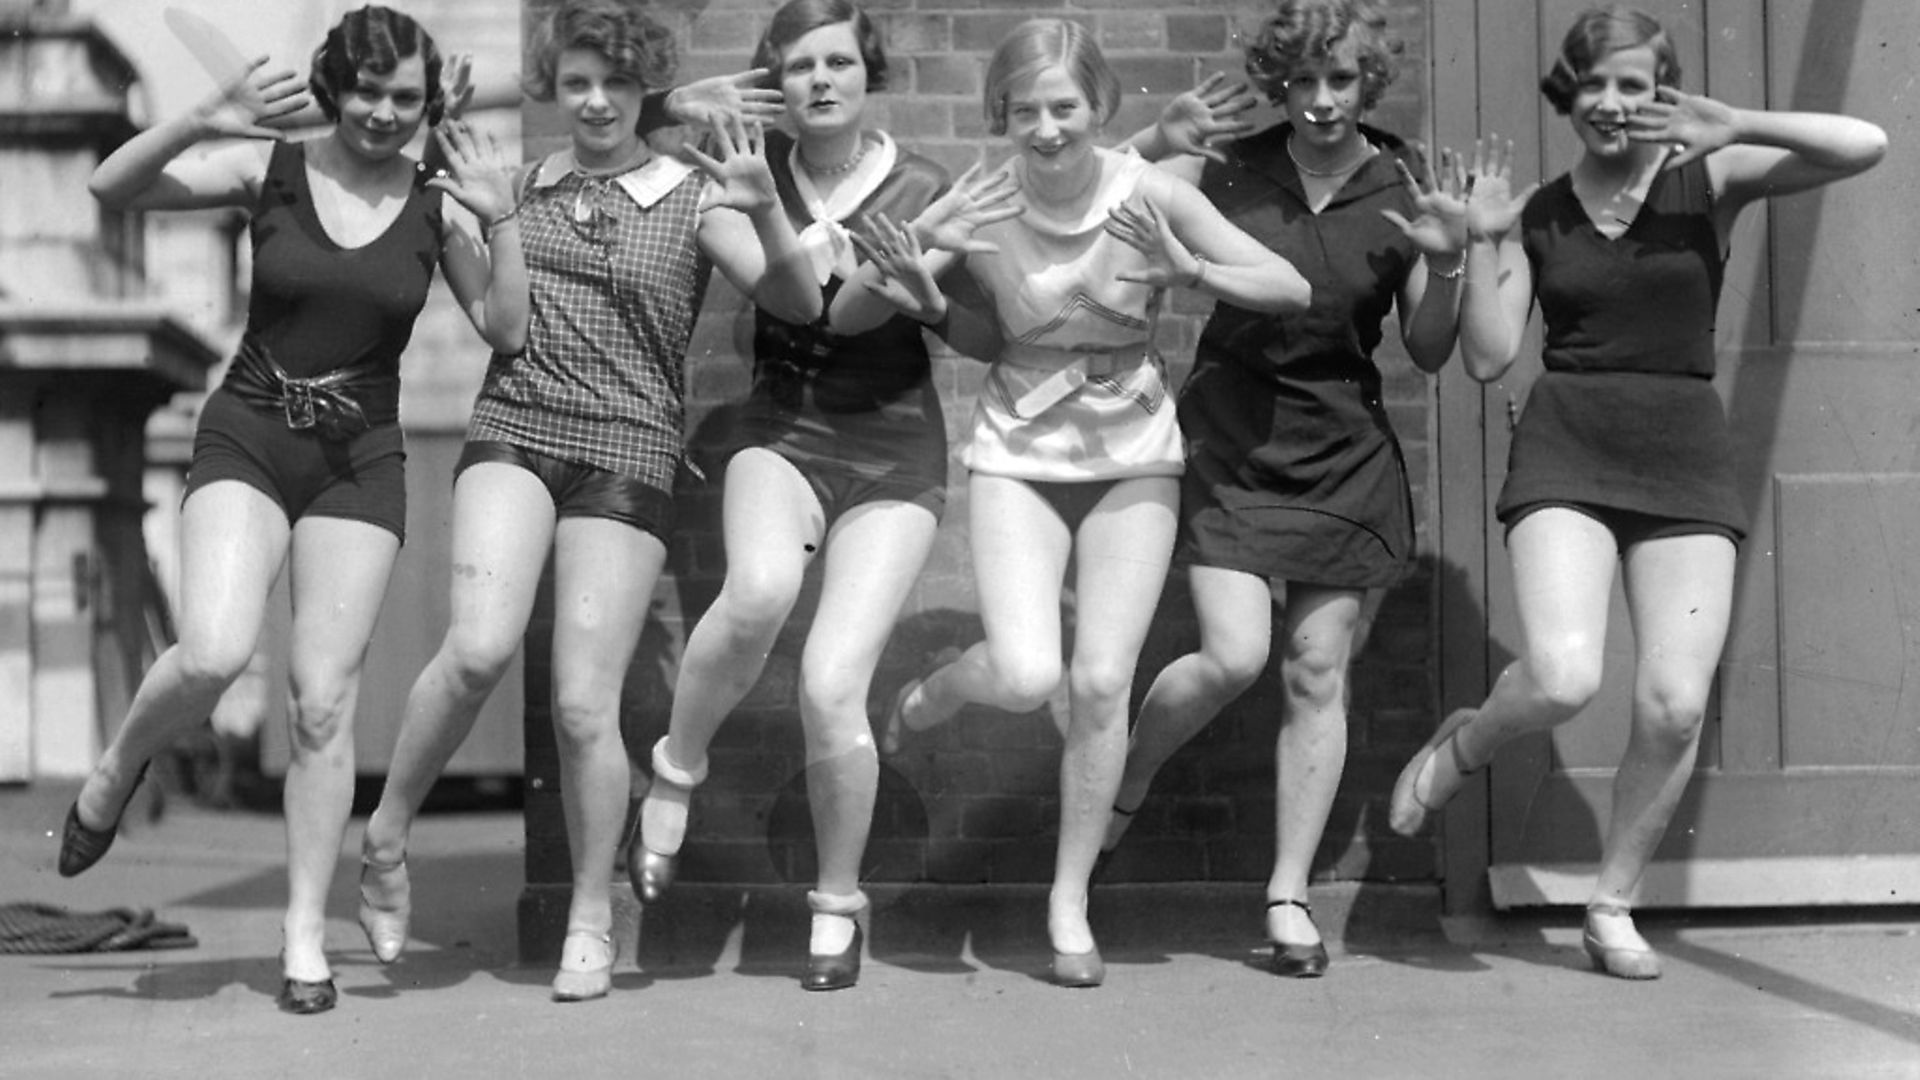 circa 1926:  Dancers demonstrating steps from the 'Charleston'.  (Photo by General Photographic Agency/Getty Images) - Credit: Getty Images